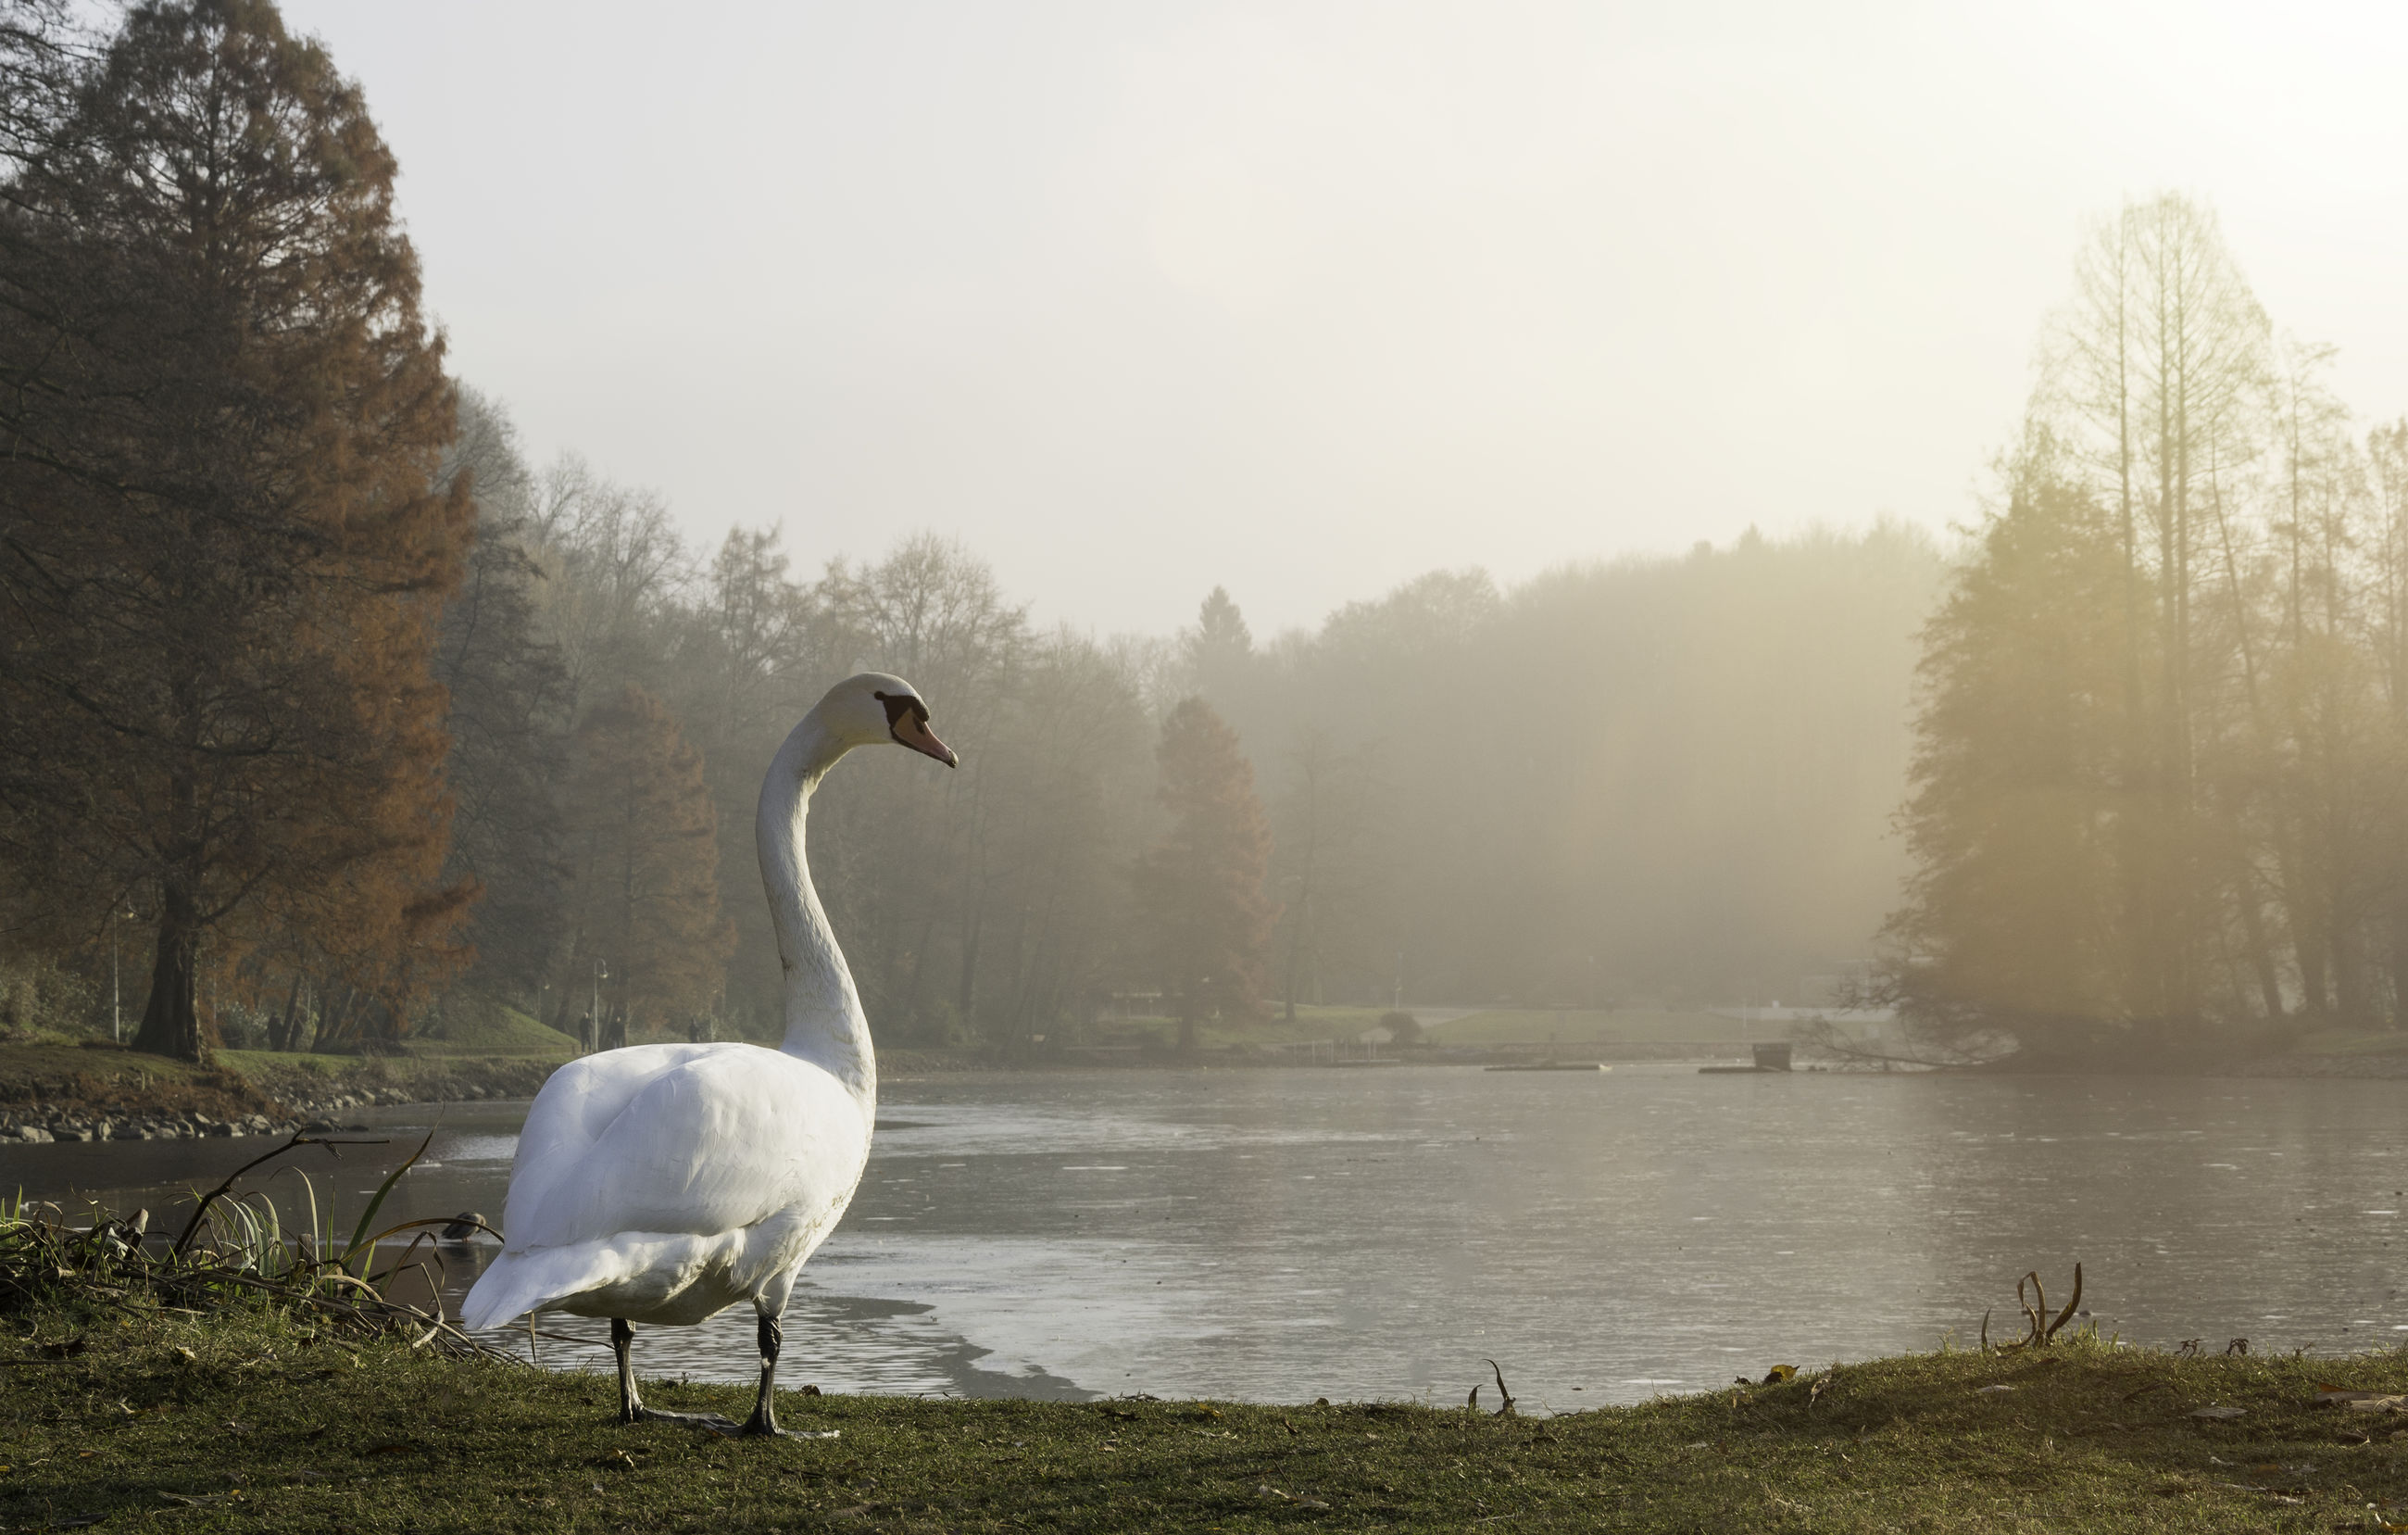 bird, animal themes, animals in the wild, tree, animal wildlife, nature, fog, beauty in nature, one animal, day, no people, lake, water, sky, outdoors, swan